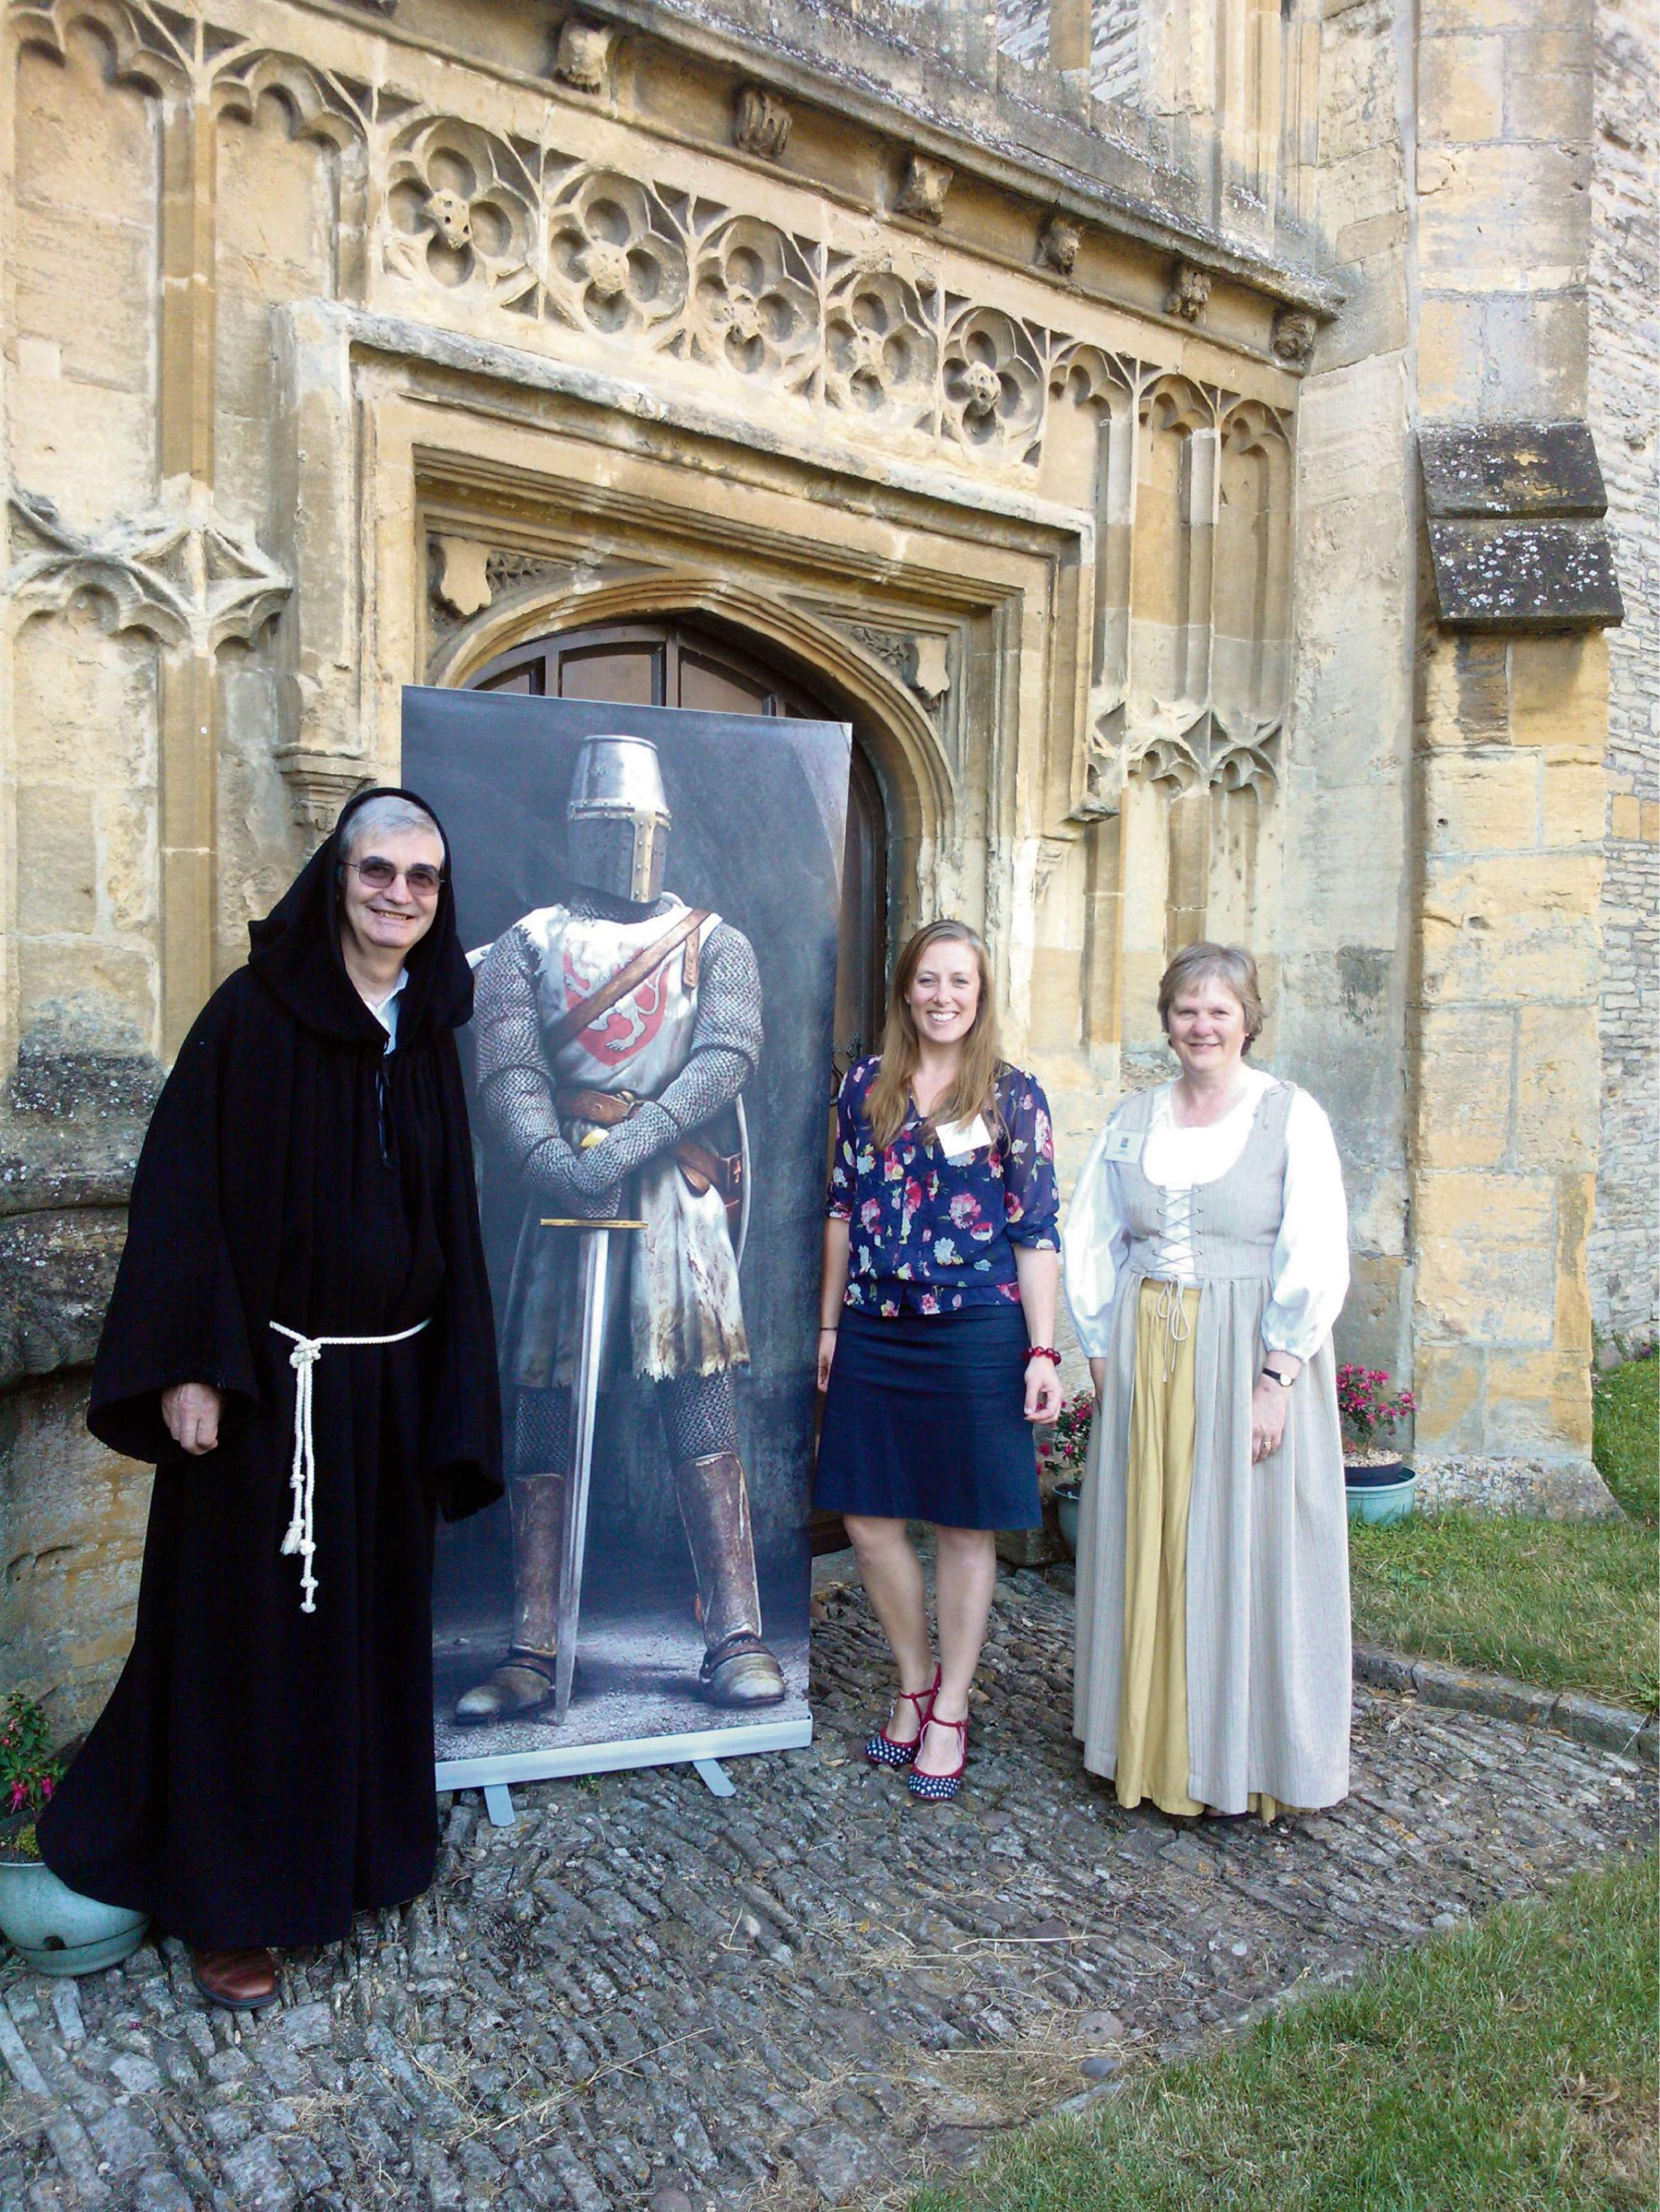 Brother John (John Jenkinson, of the Evesham Hotel) with festival organiser Antonia Coles and Lady Clare (Clare Bostle, of the Simon de Montfort Society) at the launch of the Battle of Evesham Festival.